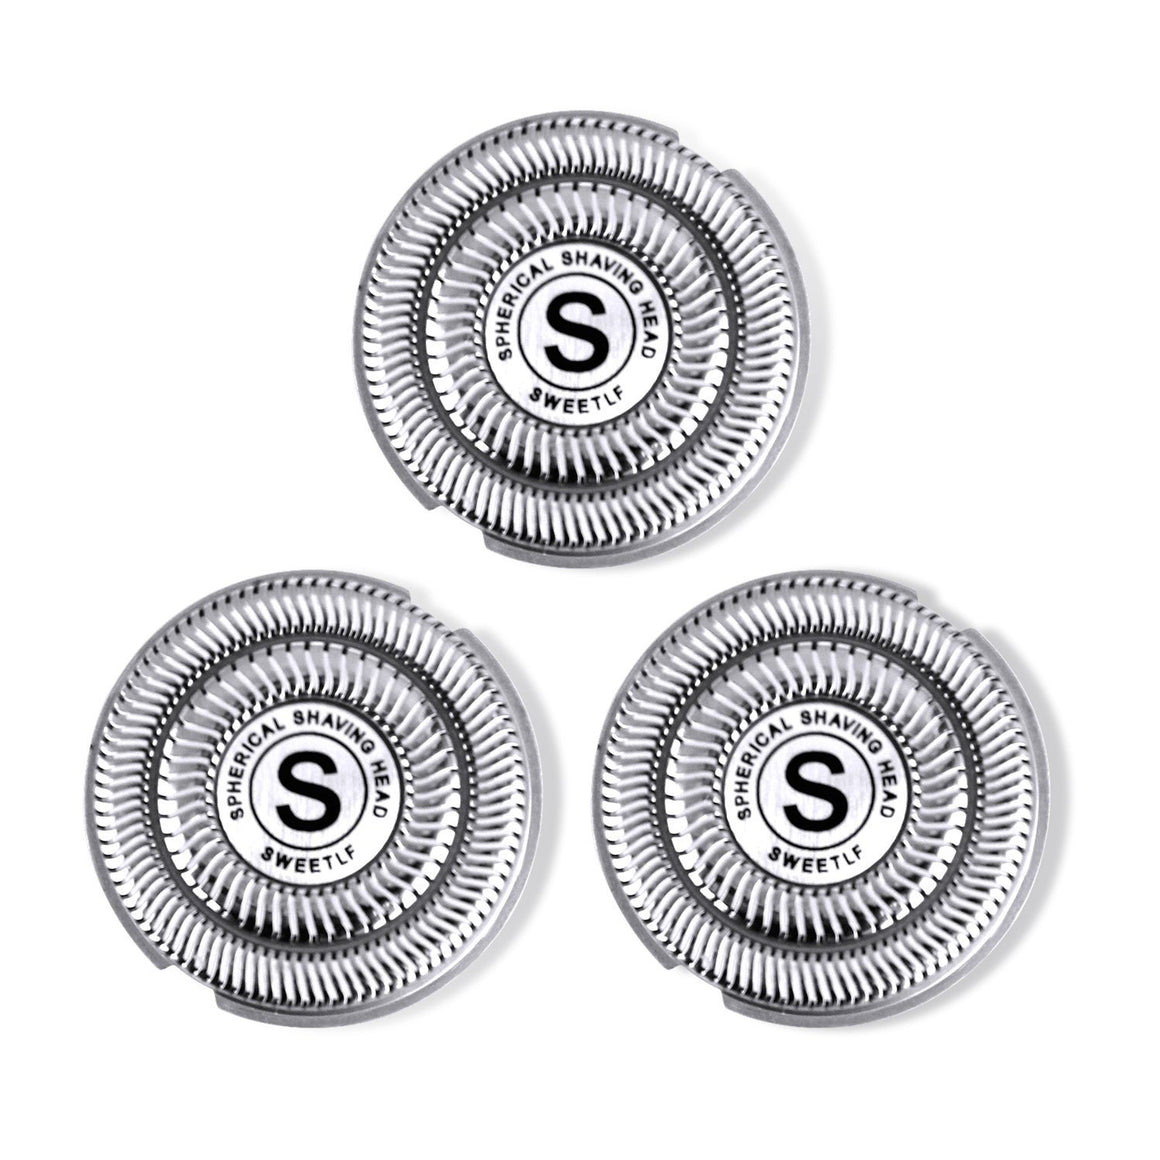 SweetLF 3 Pcs Replacement Shaver Head Blade Cutters for Mens Electric Shaver